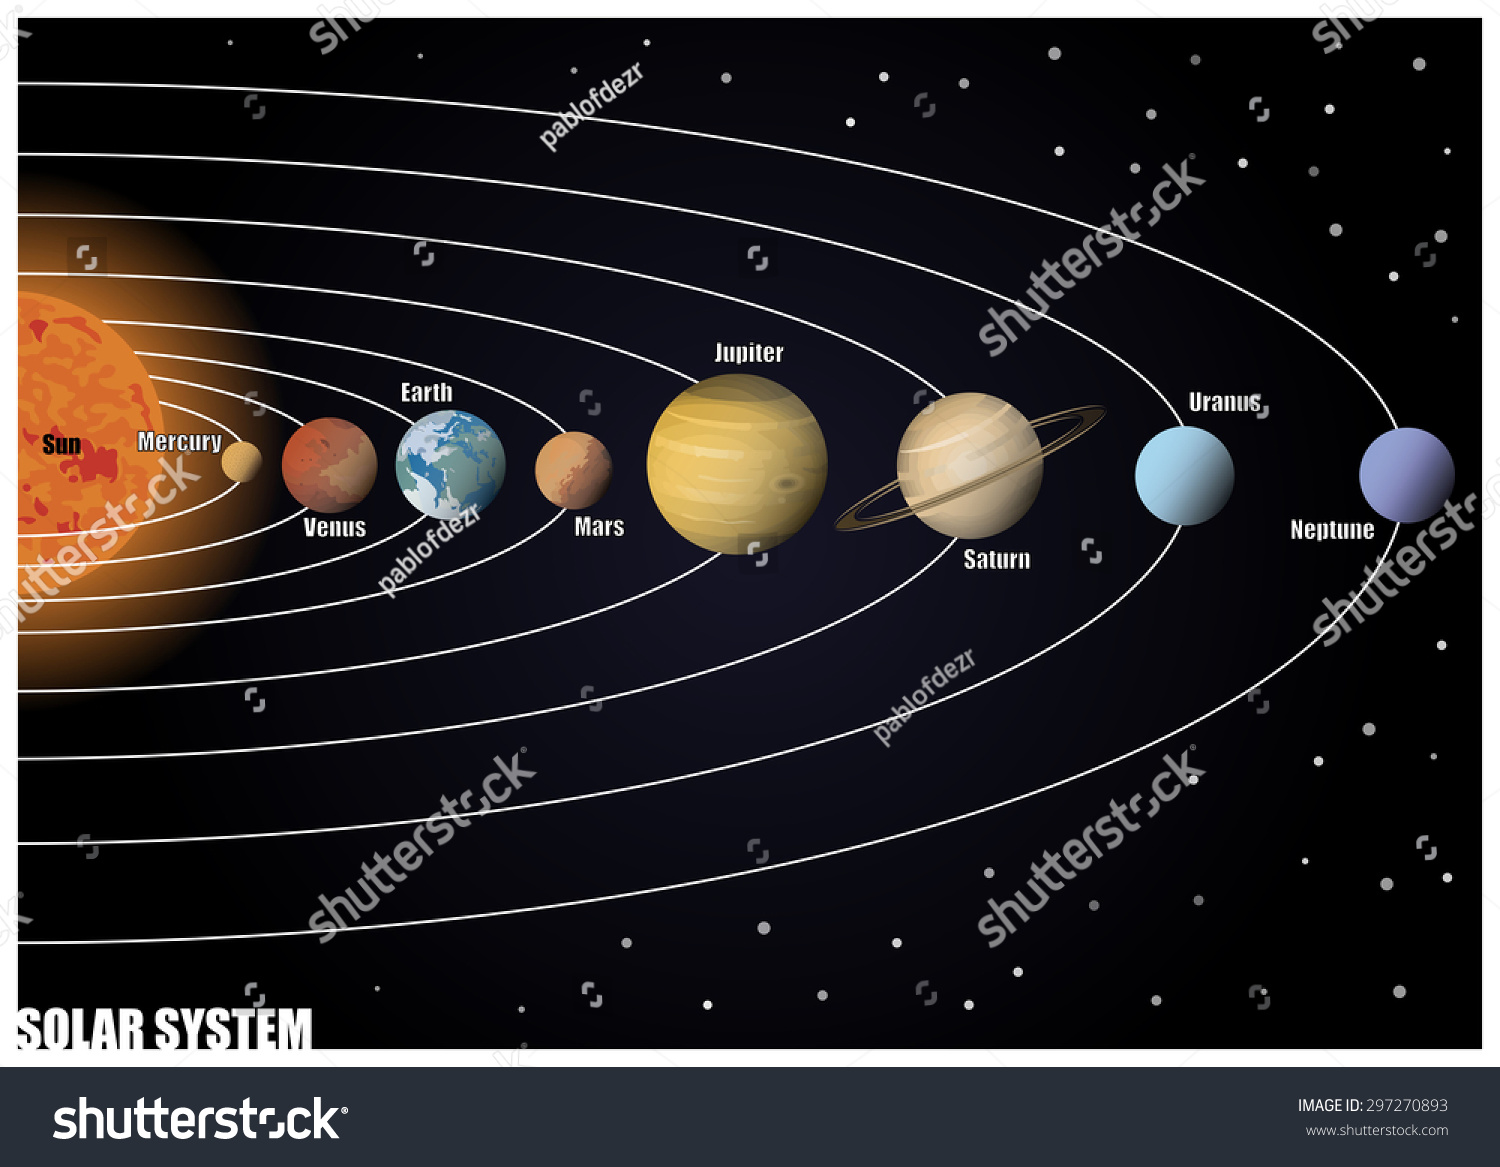 Diagram Solar System Stock Vector 297270893 - Shutterstock